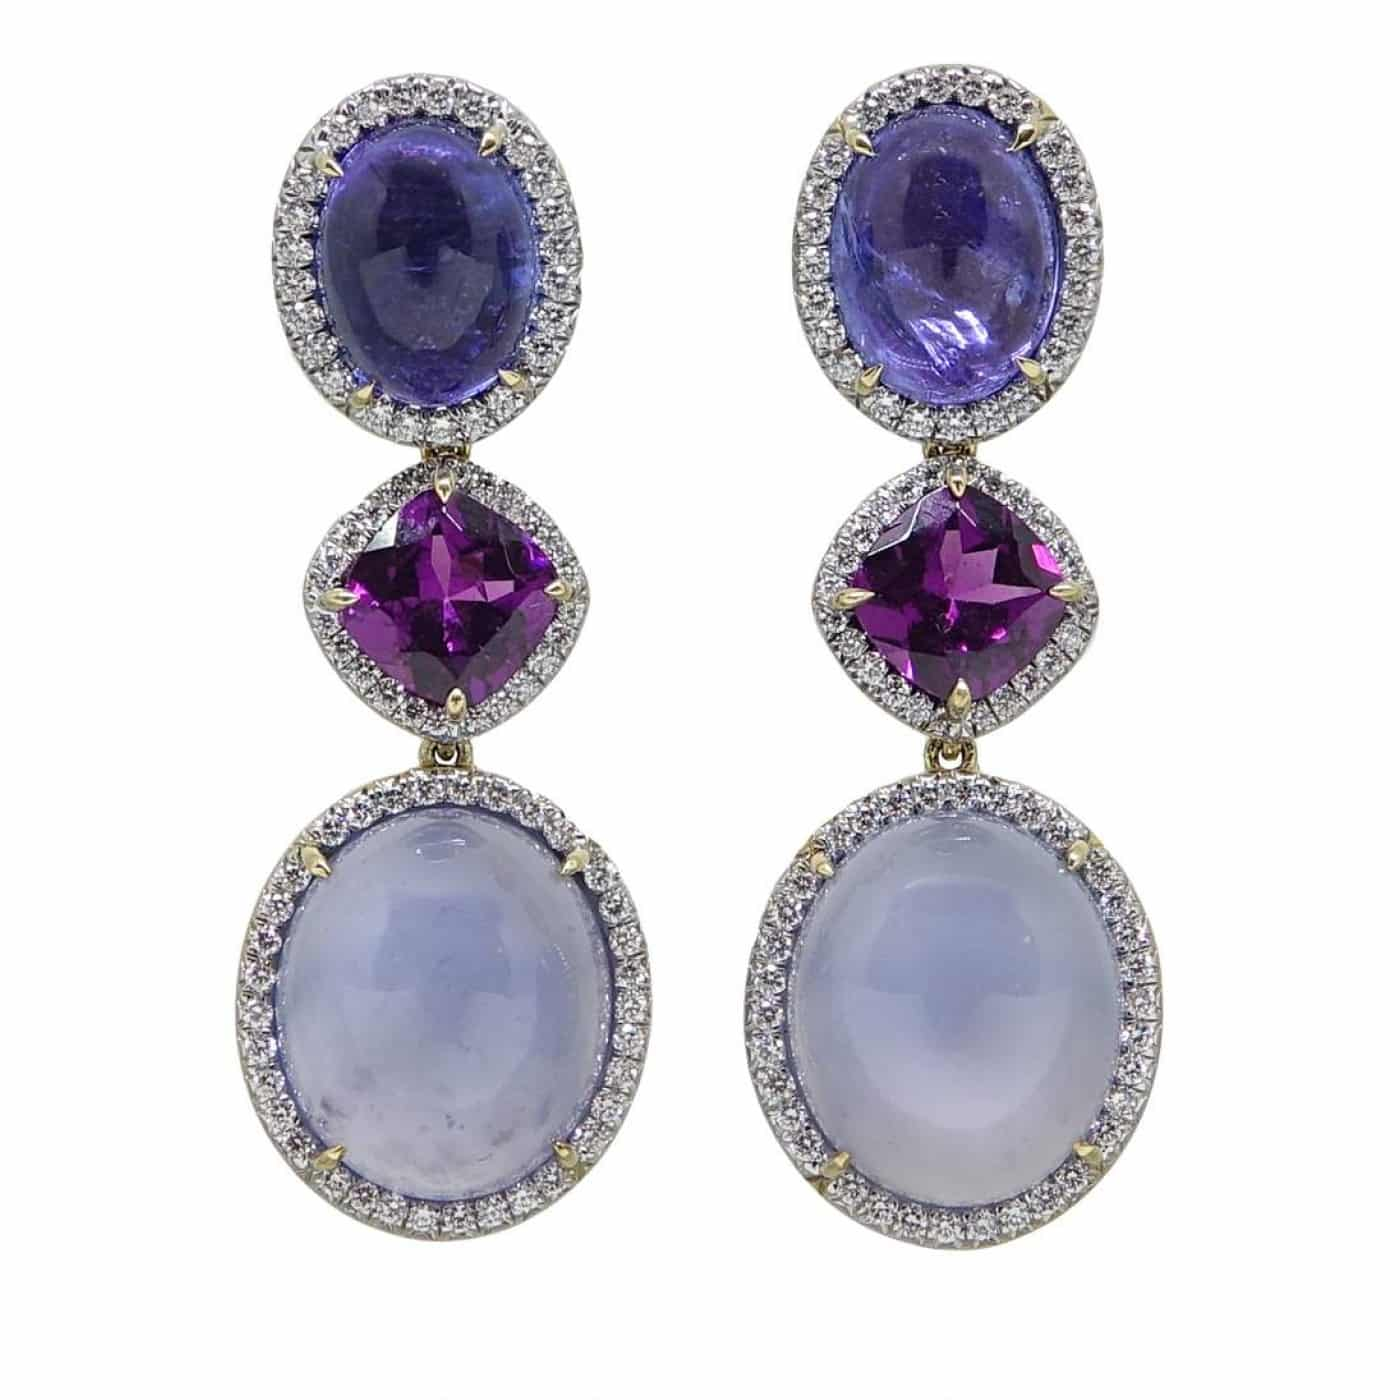 TANZANITE, PURPLE GARNETS AND LAVENDER CHALCEDONY AND DIAMOND EARRINGS